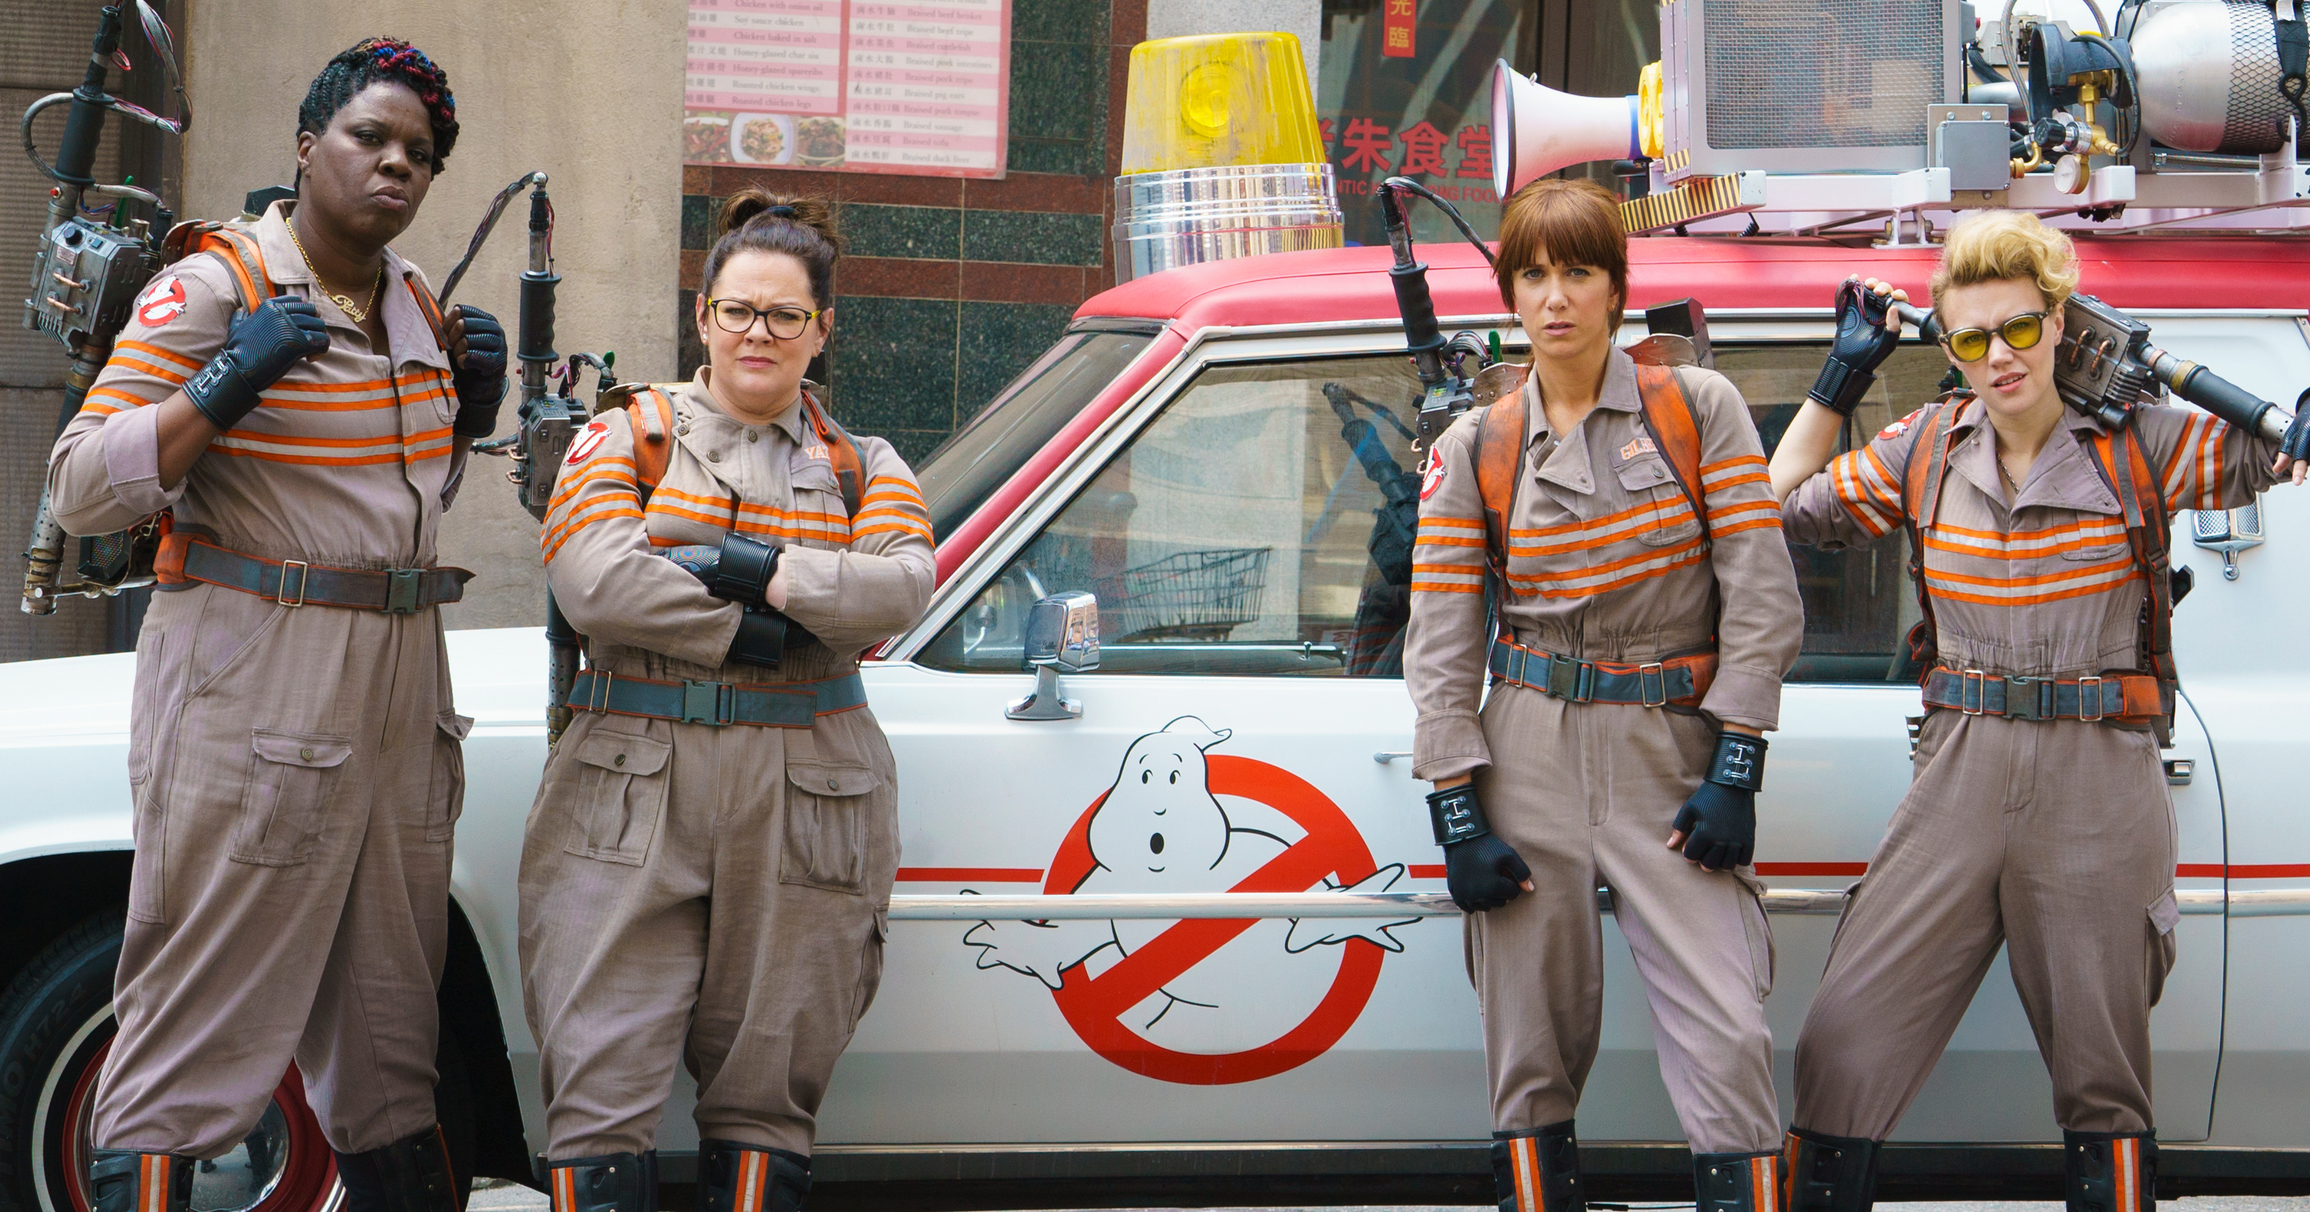 From left: Leslie Jones, Melissa McCarthy, Kristen Wiig and Kate McKinnon in Ghostbusters.